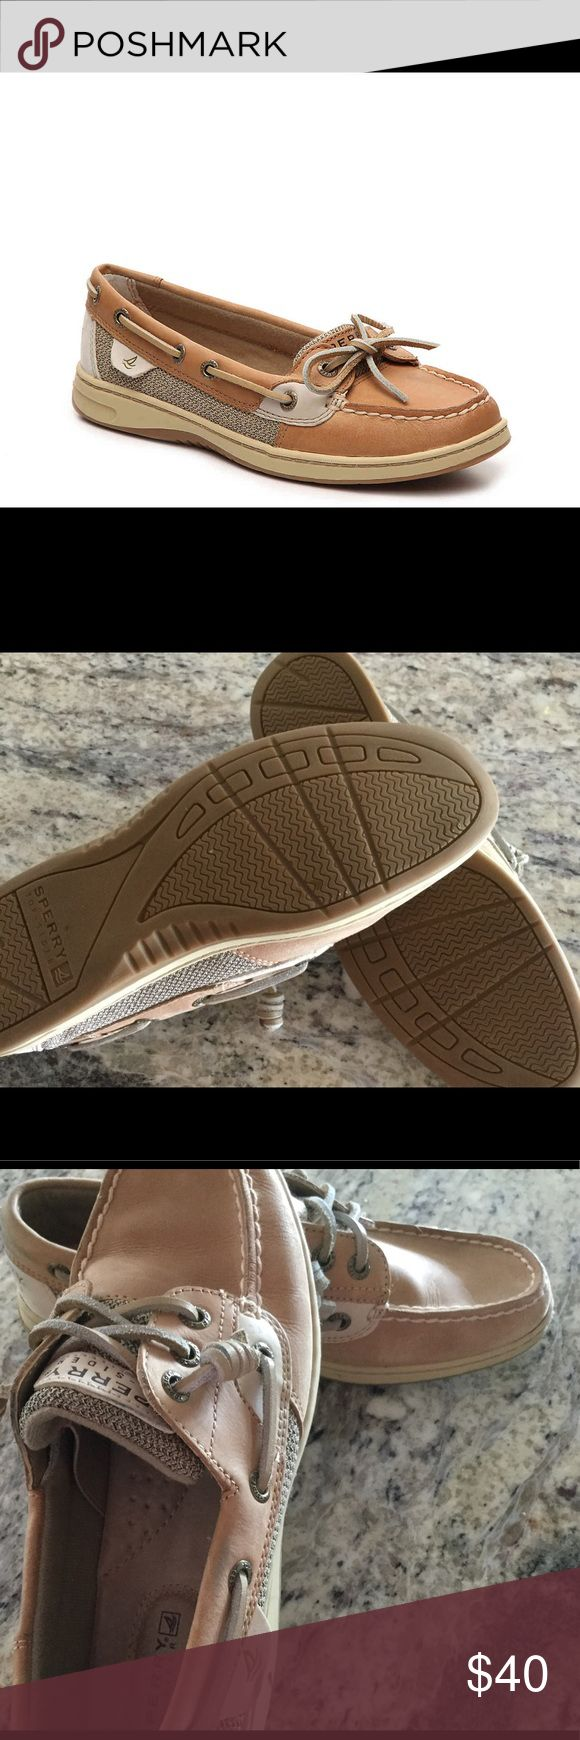 SPERRY ANGELFISH TOP SIDER Women's slip on leather Sperry Angelfish top sider. Canvas with fabric upper. Tan colored, with leather shoelaces. Hardly worn, no scuff marks, see bottom for wear, do not smell, smoke free. Excellent condition. Size 6.5 Sperry Top-Sider Shoes Flats & Loafers